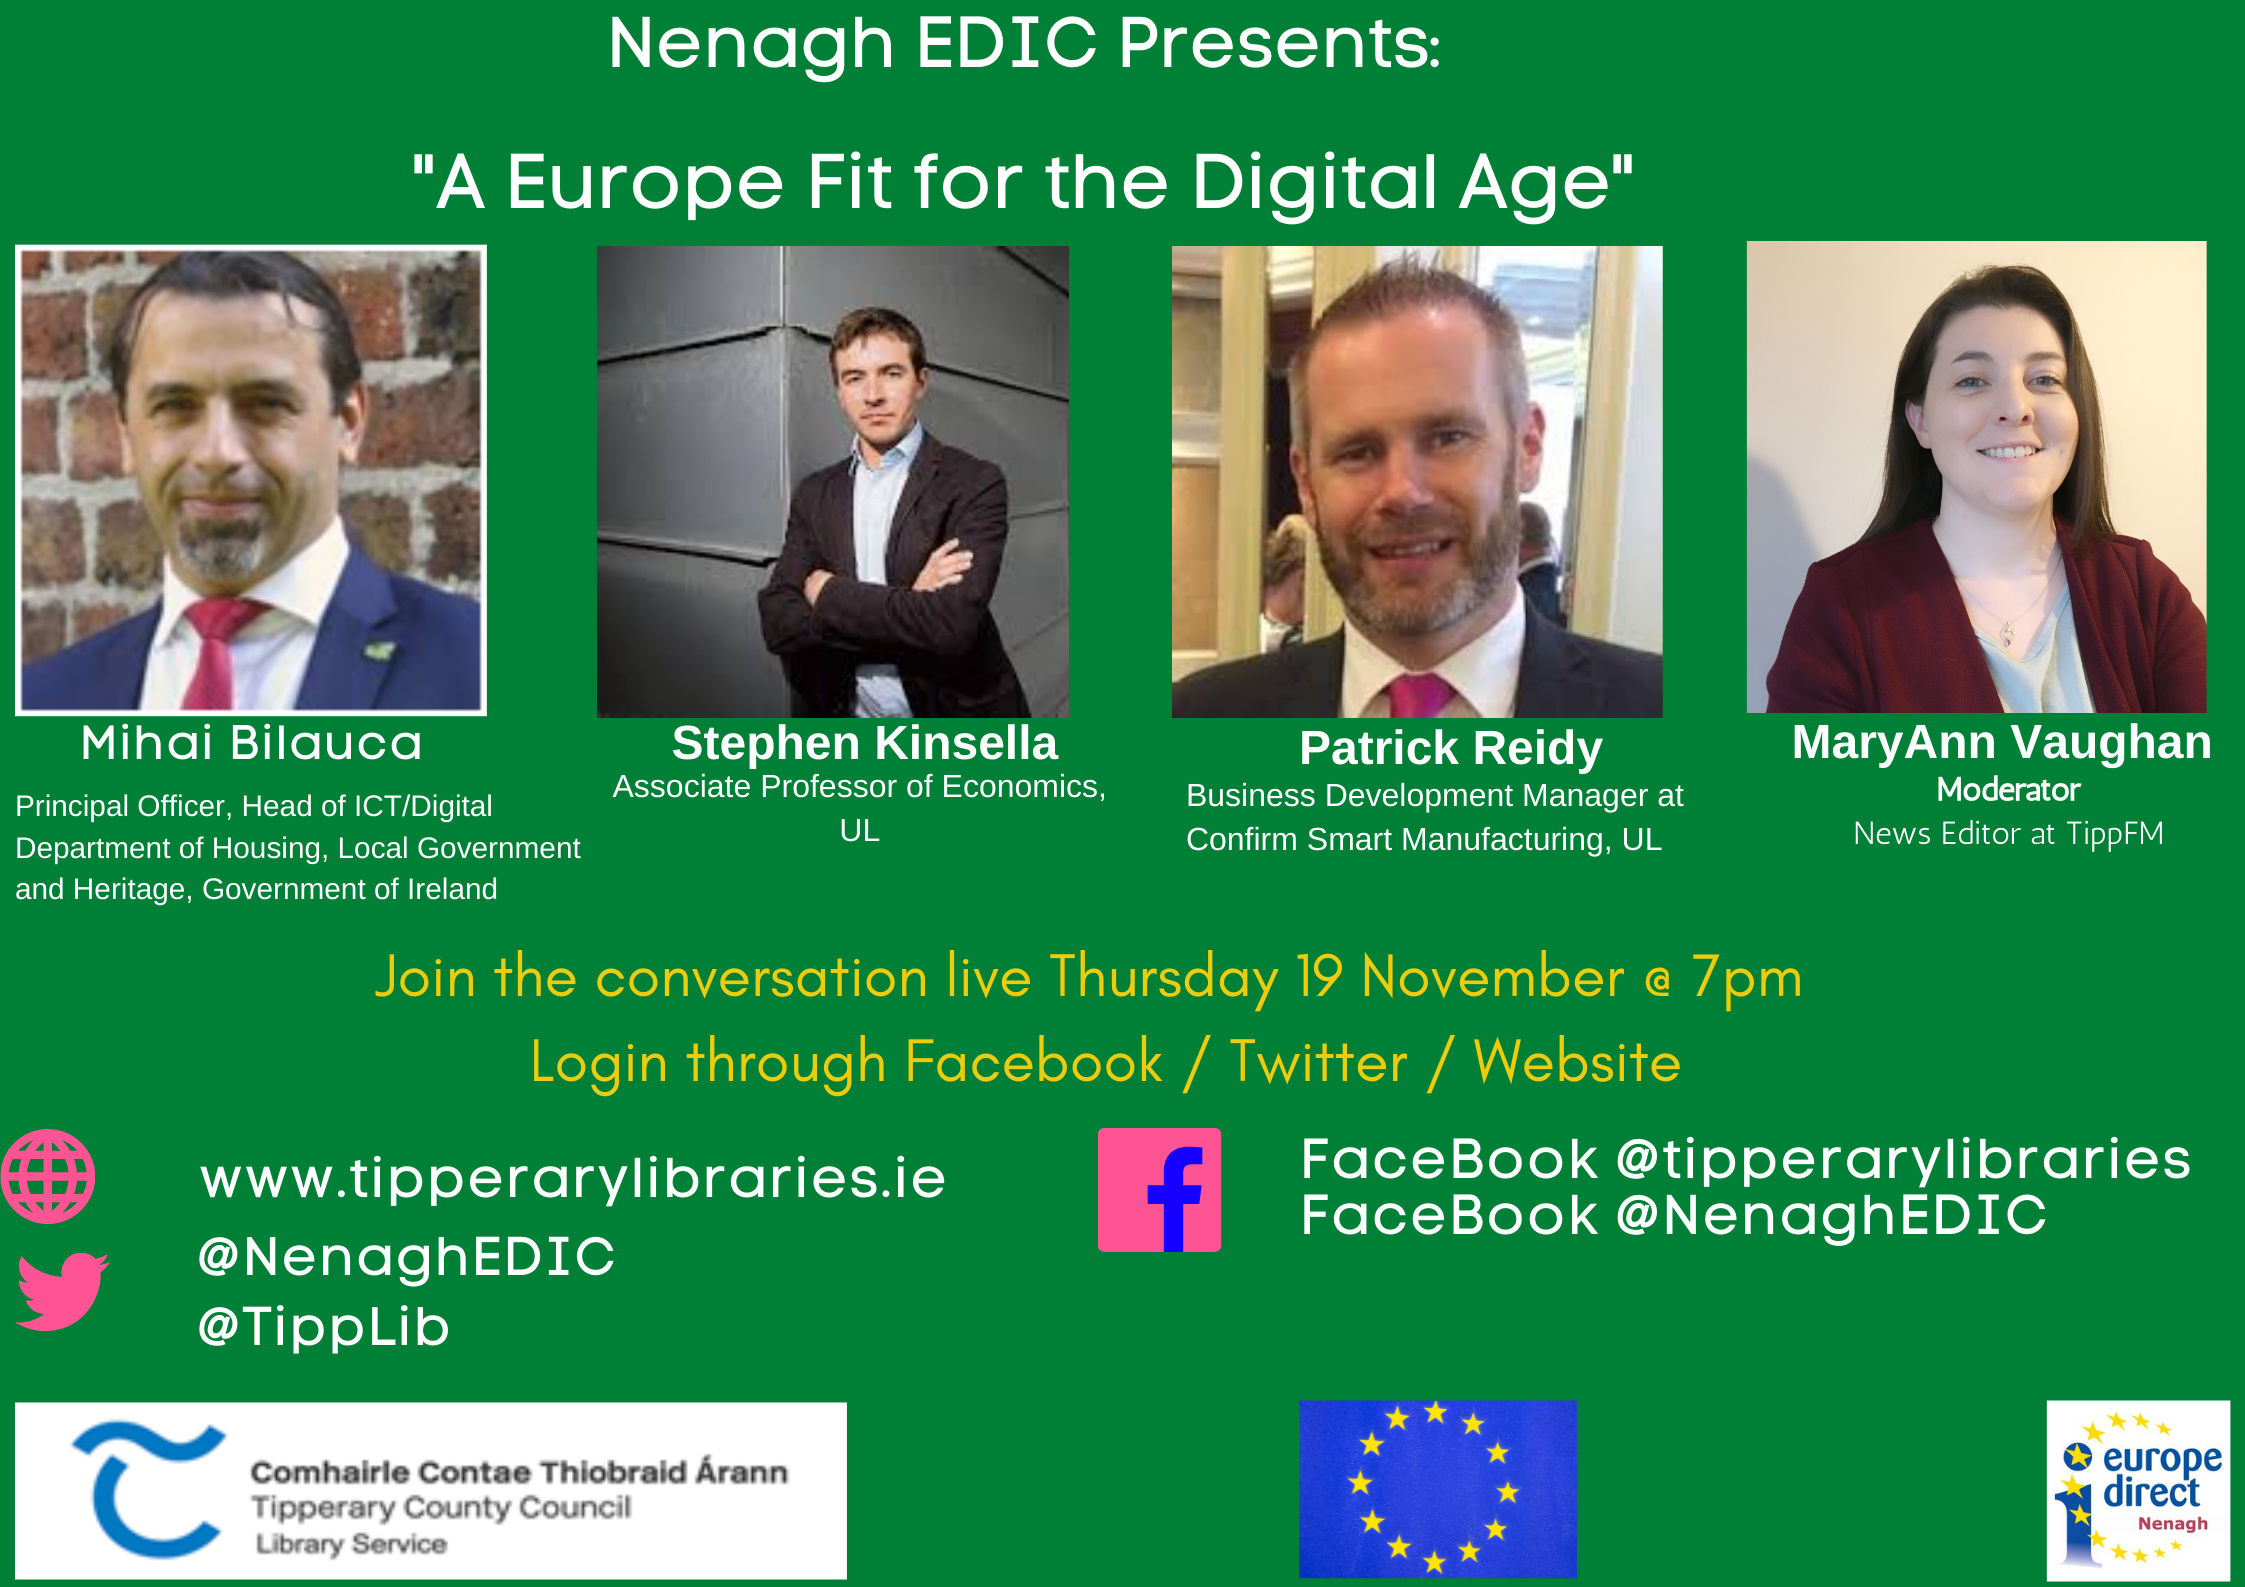 'A Europe Fit For The Digital Age': Nenagh EDIC Online Talk  Thursday 19th November At 7pm